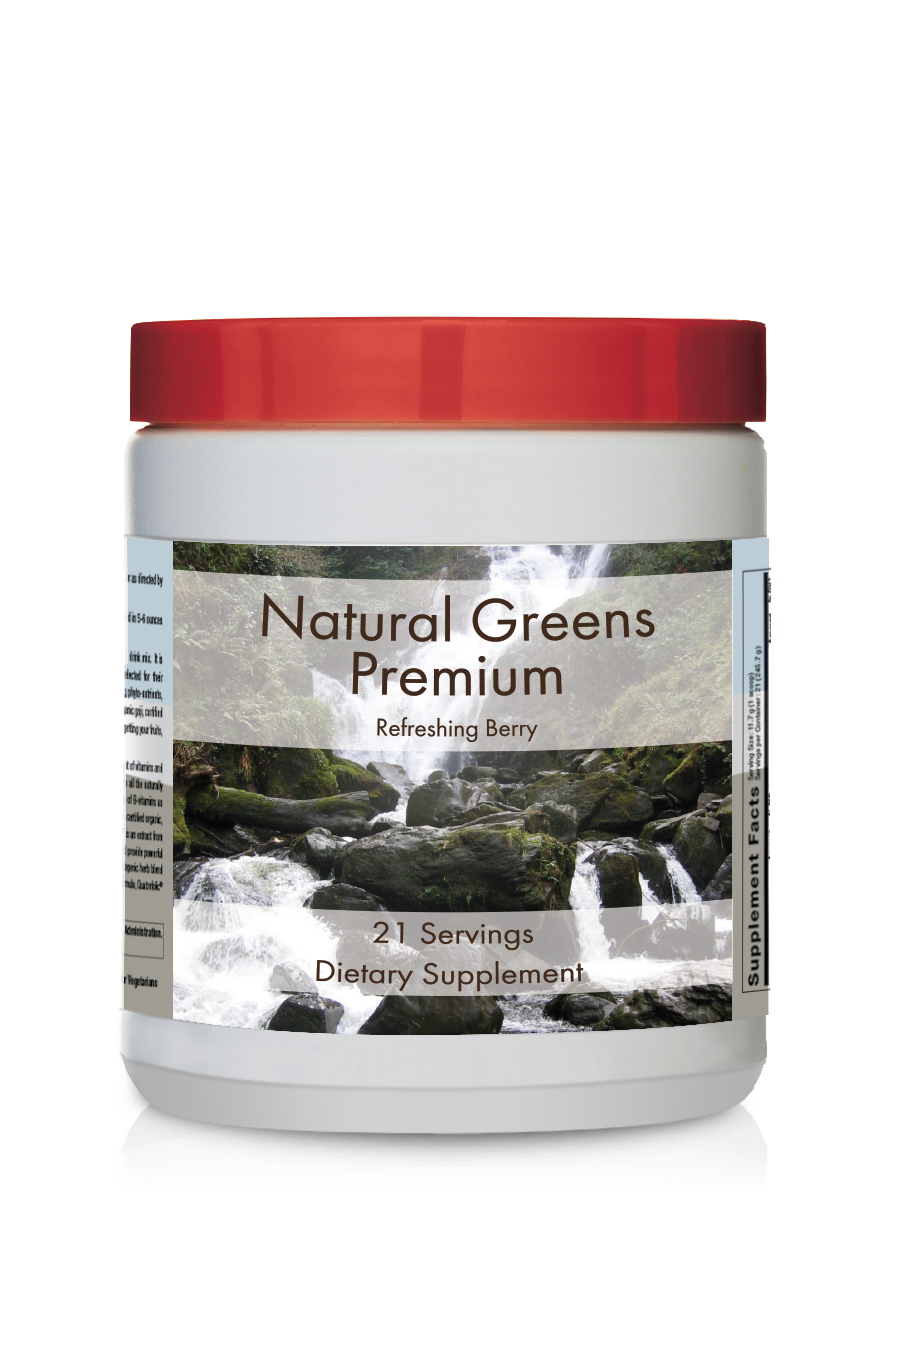 Natural Greens Premium - North Texas Wellness Center